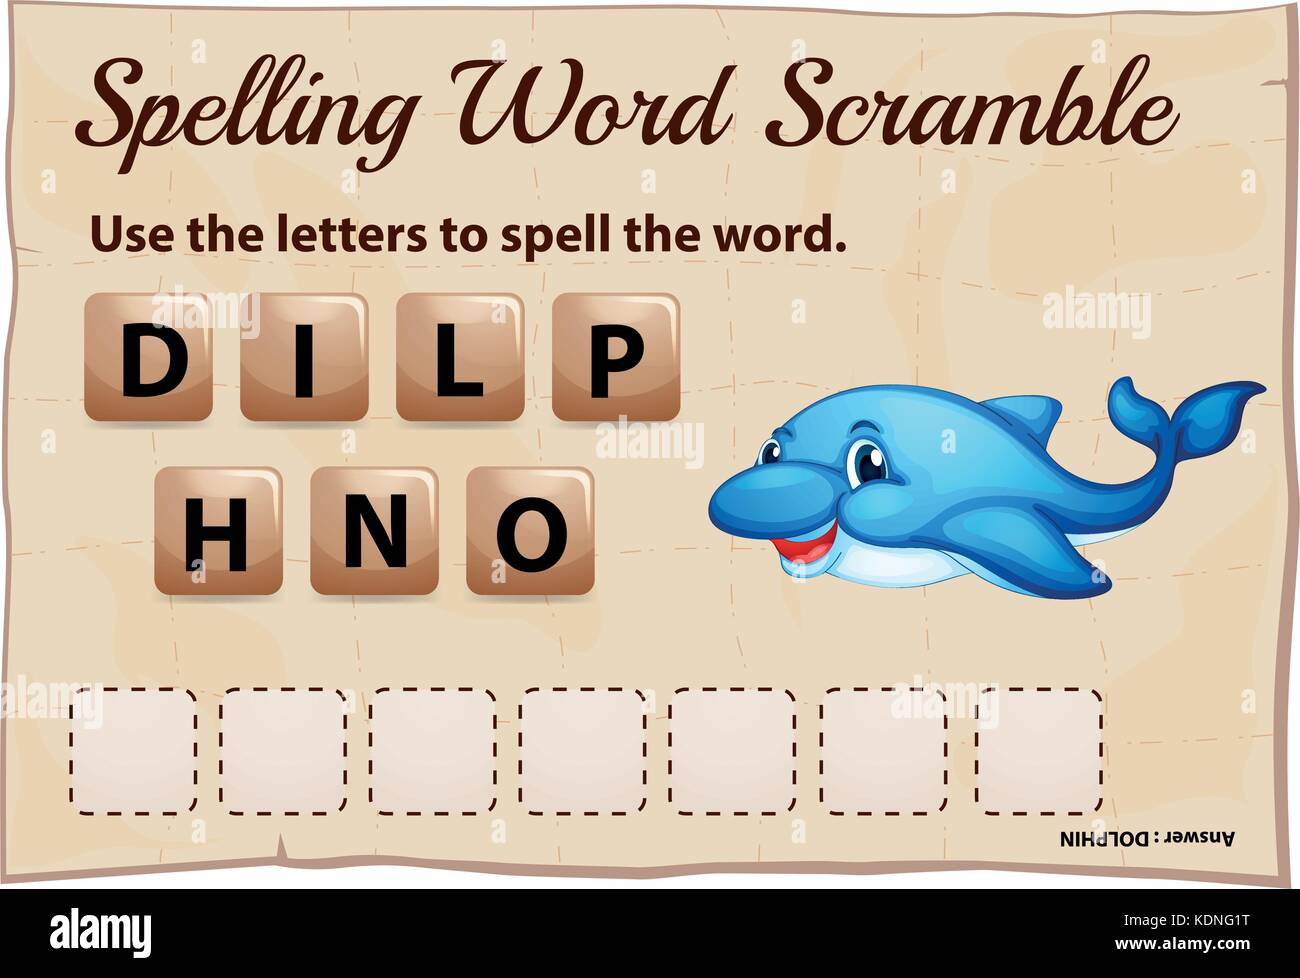 Spelling word scramble template for dolphin illustration - Stock Vector